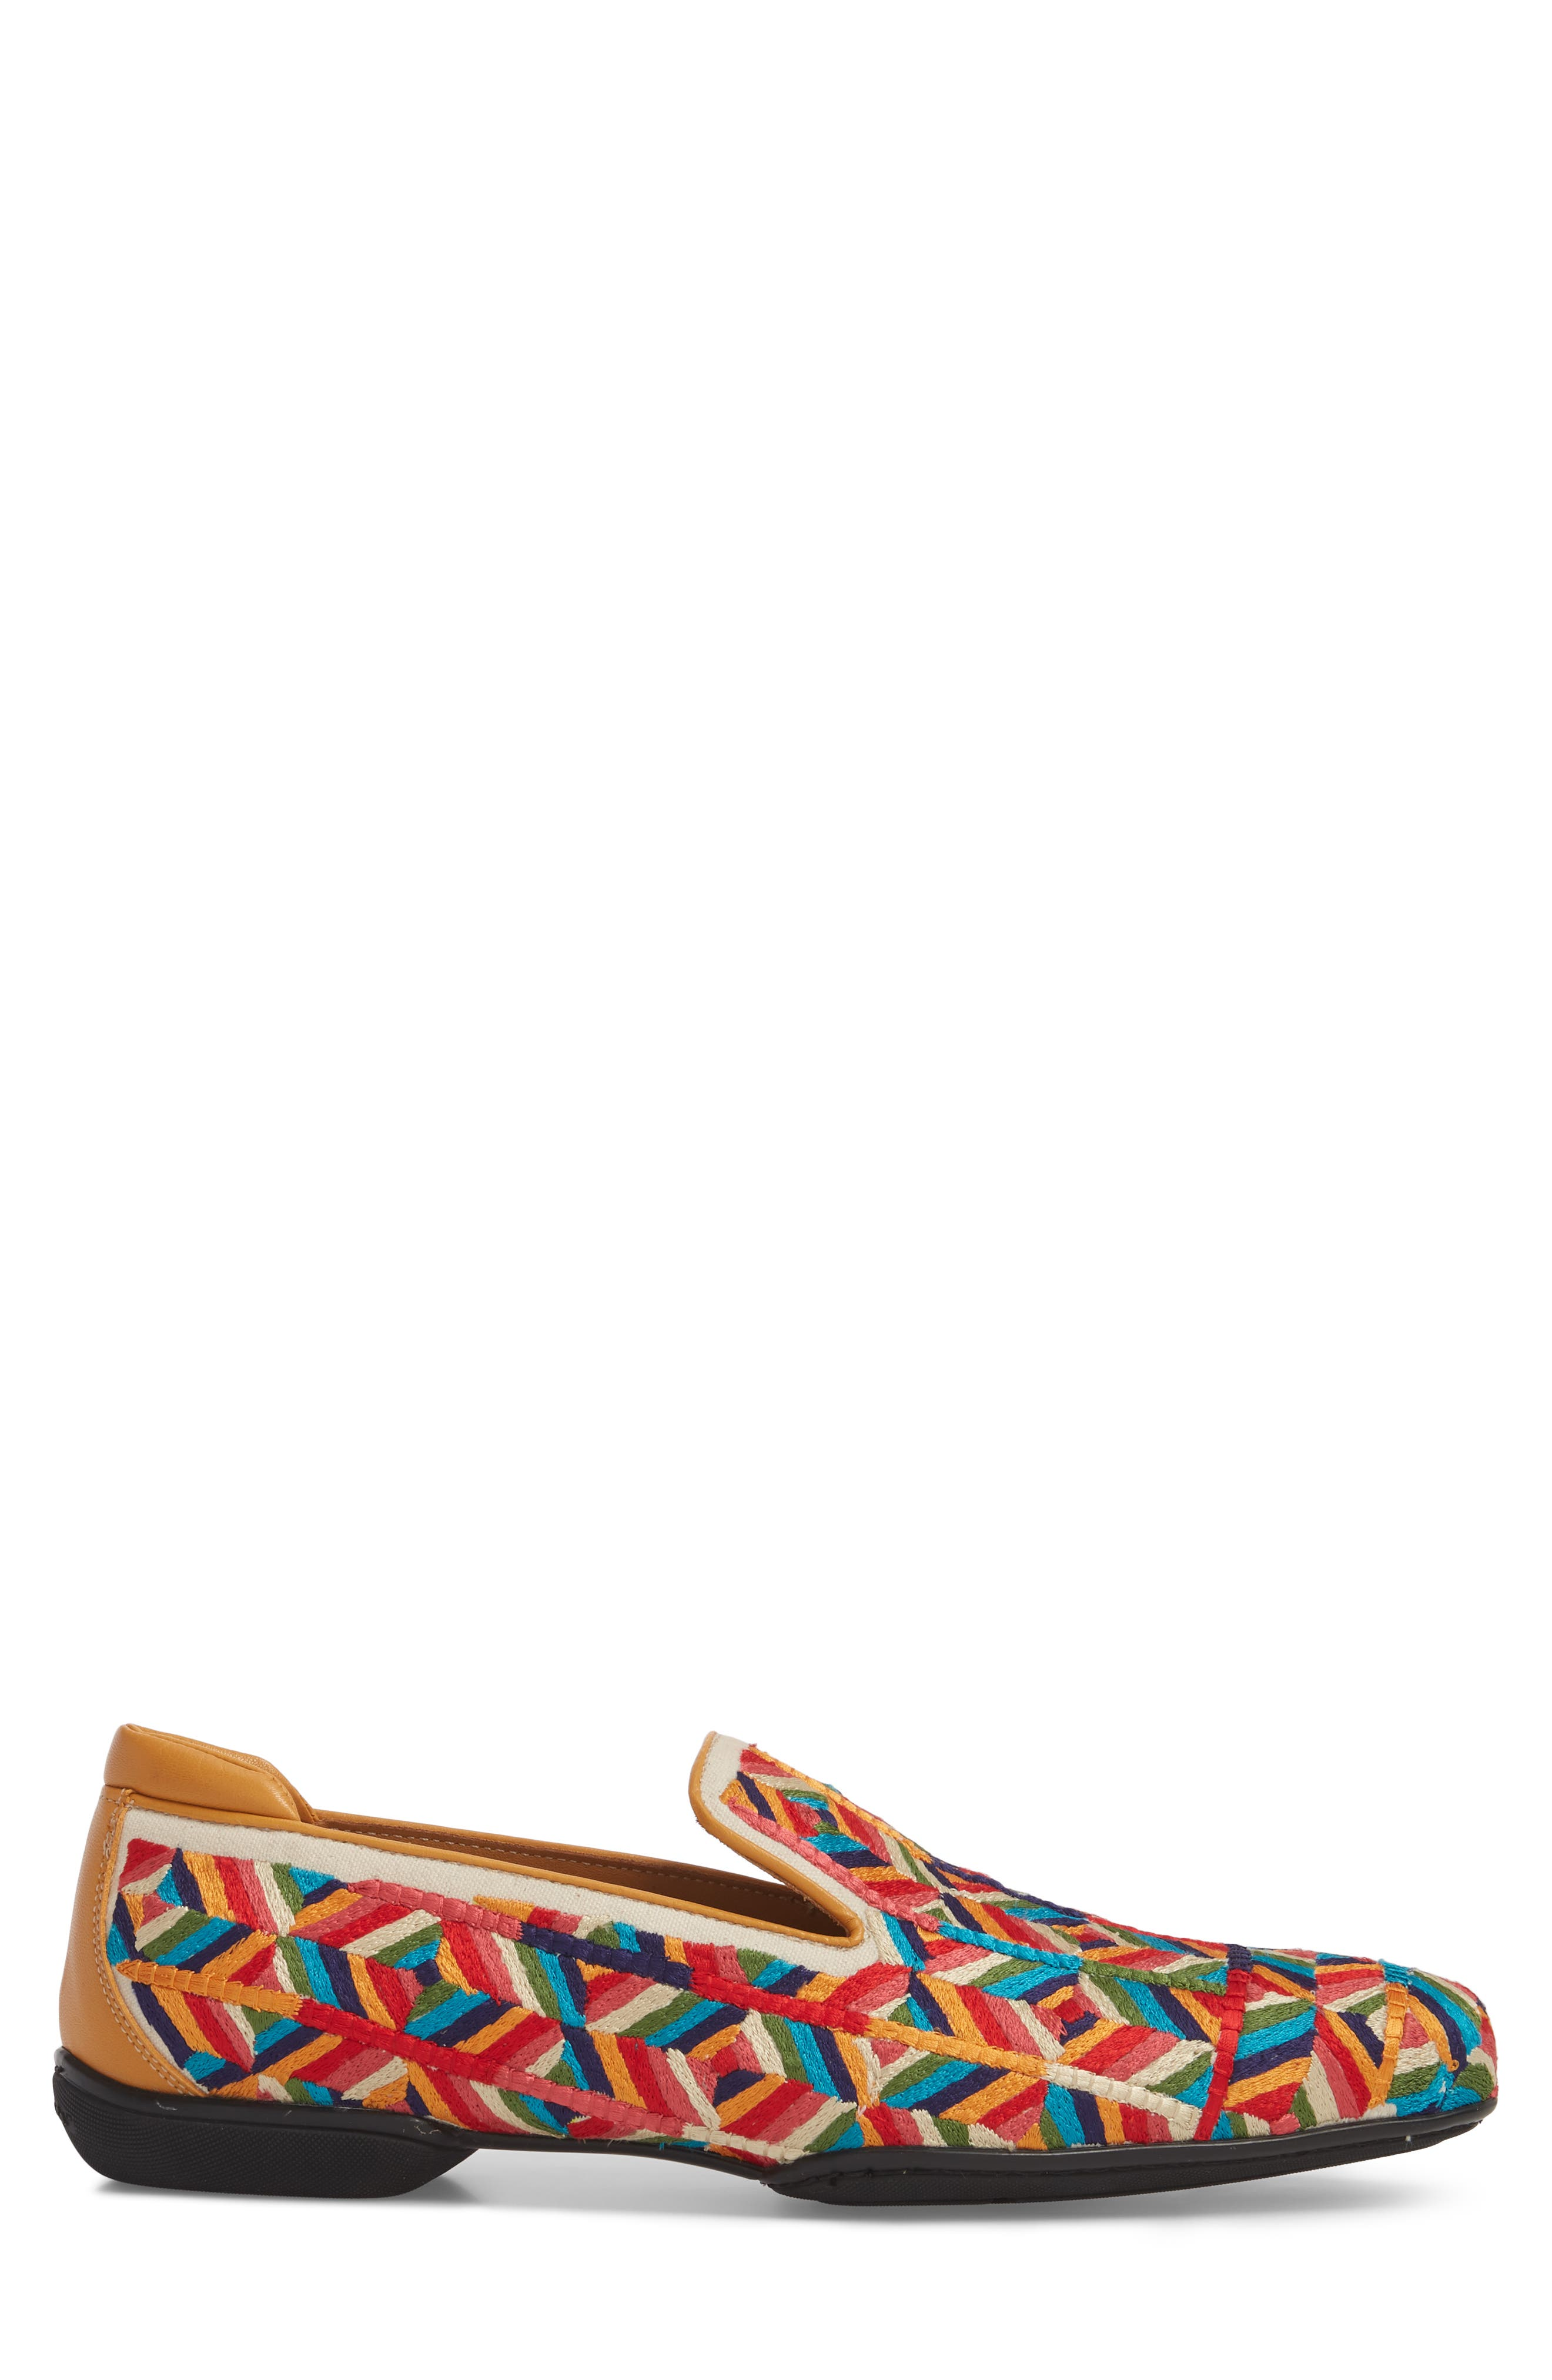 Verge Venetian Loafer,                             Alternate thumbnail 3, color,                             Yellow Fabric